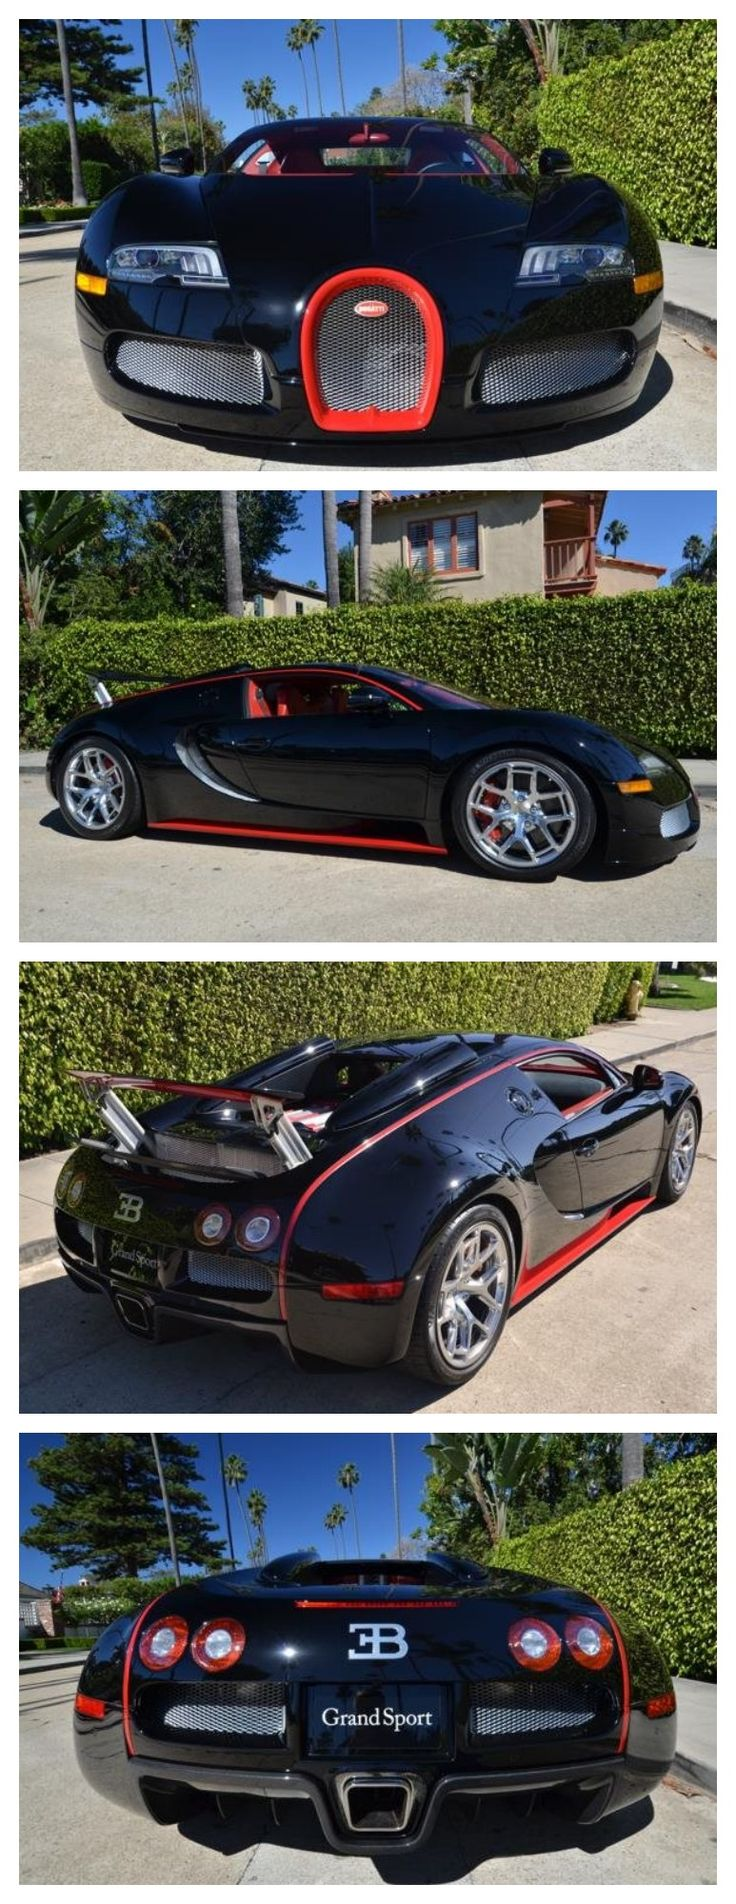 Bugatti Veyron Grandsport. 5k miles. Black with red accents #AutoAwesome